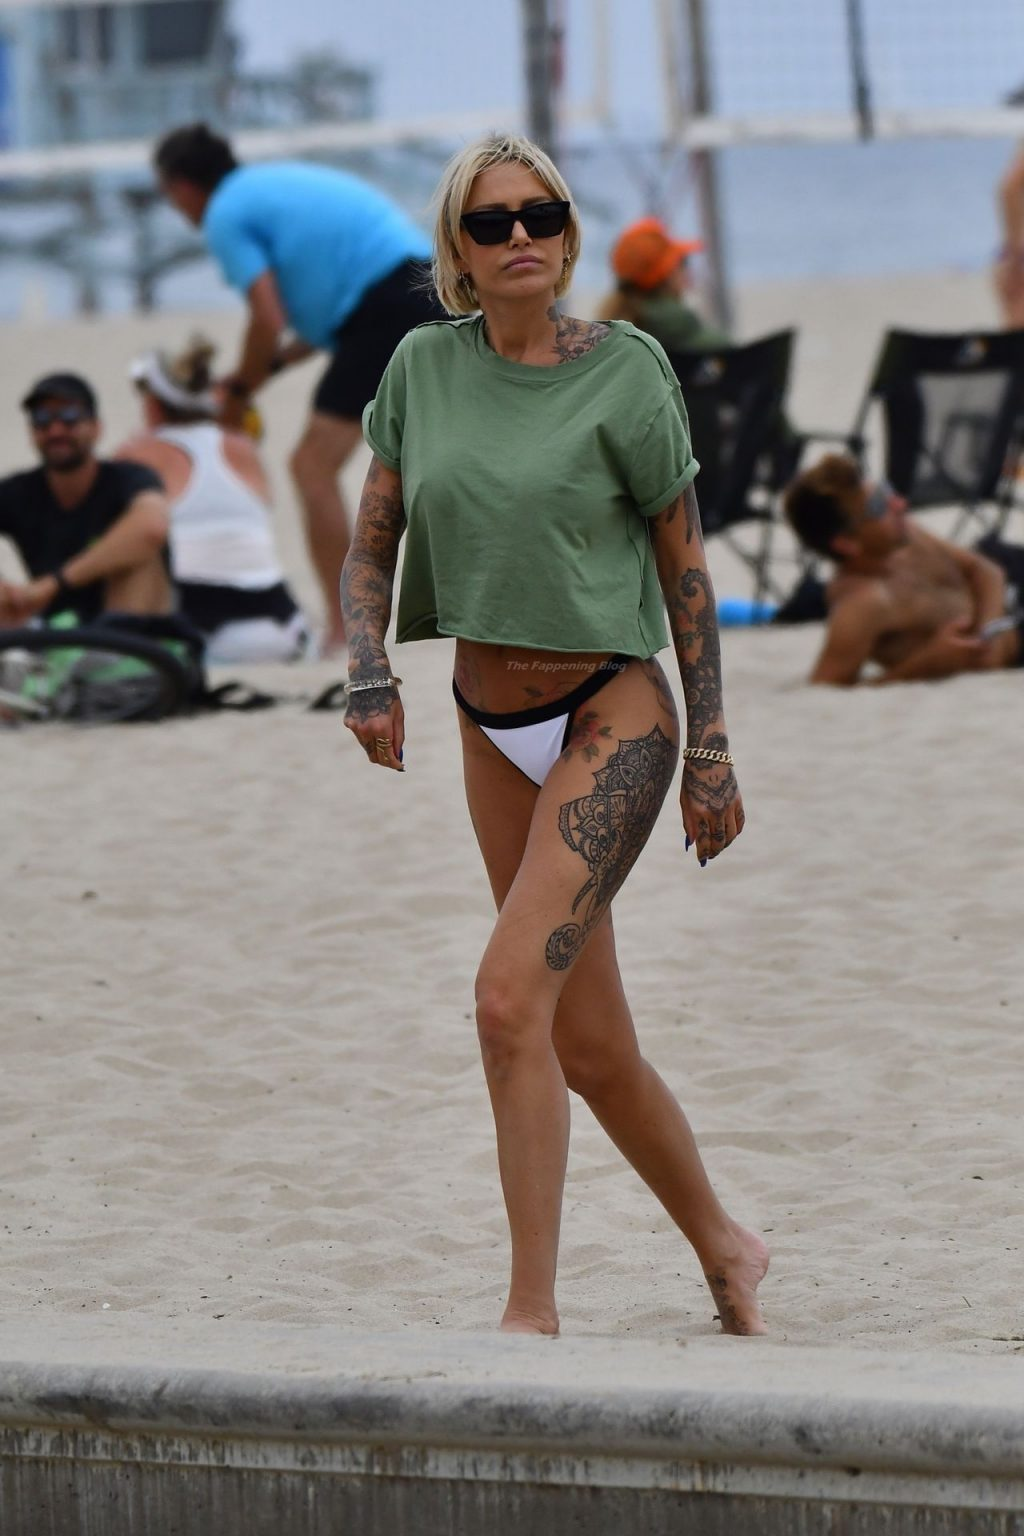 Tina Louise is Seen on the Beach with Her Boyfriend and Friends (164 Photos)